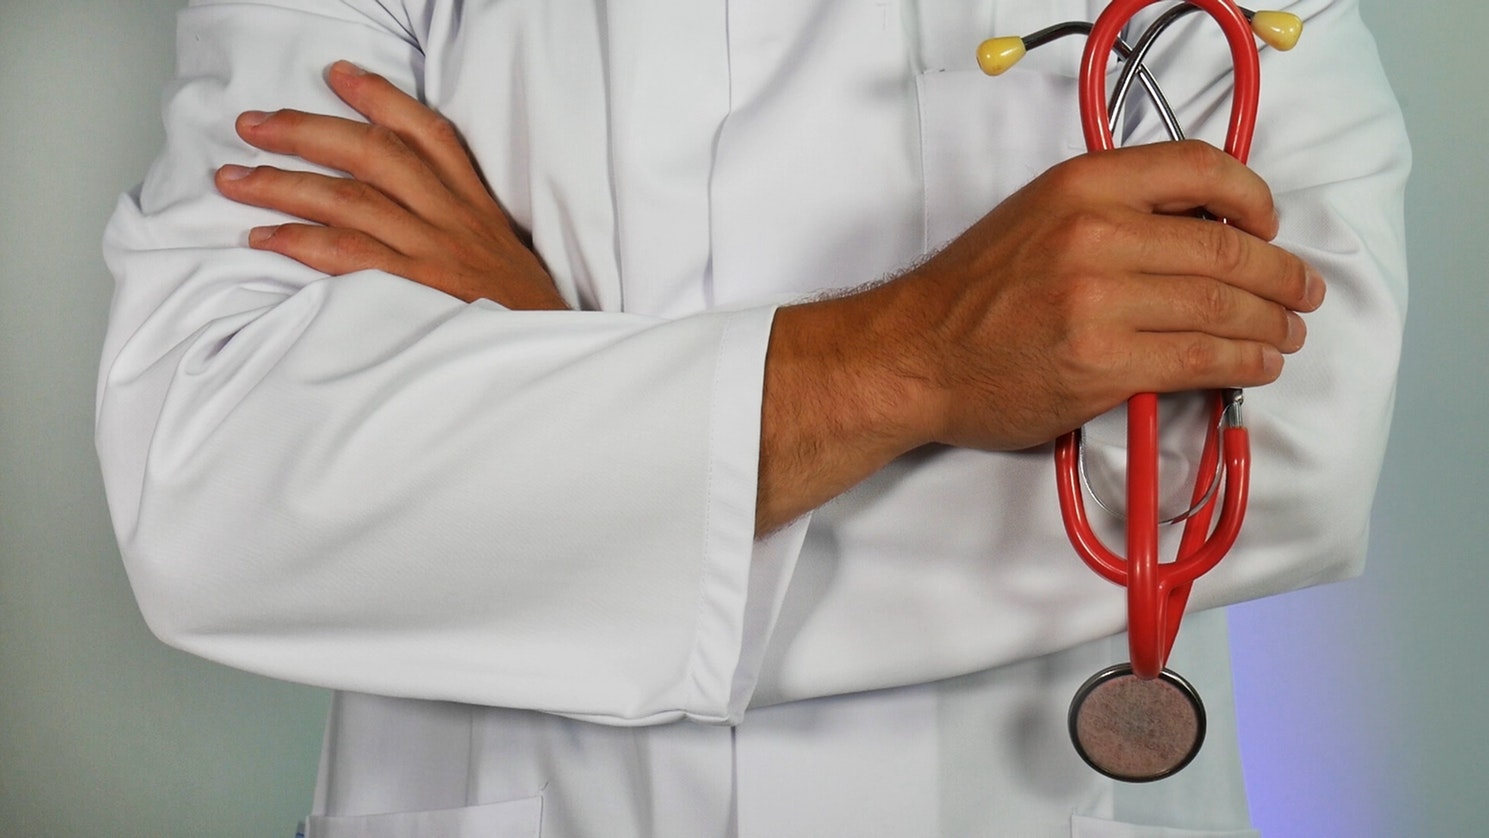 A doctor who can provide in home care to those living in an assisted living facility.